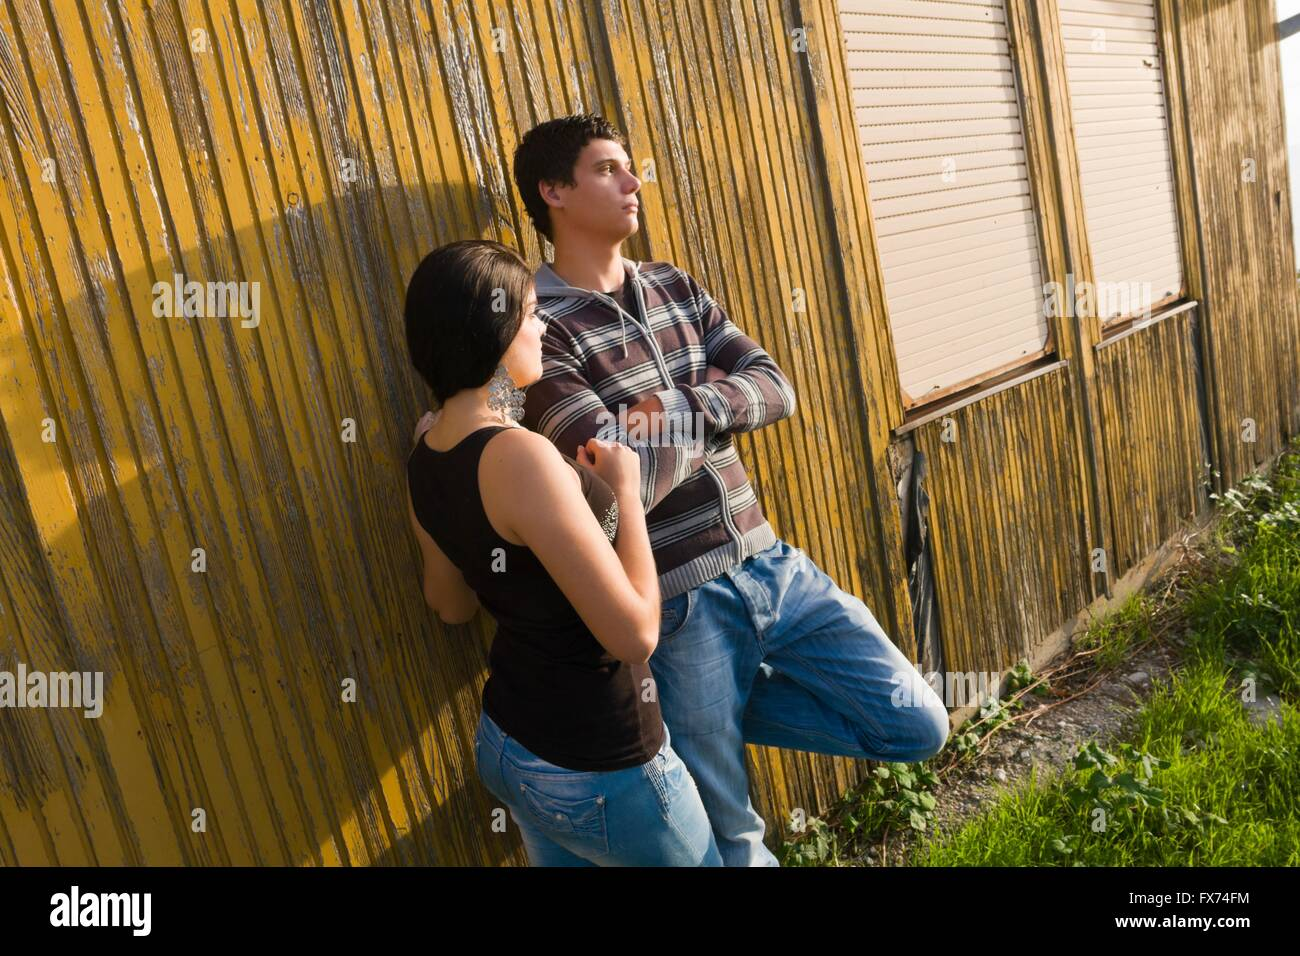 Teen girl and boy arguing deny refuse refusal negative feeling denied outdoors dispute disputing different diversity - Stock Image